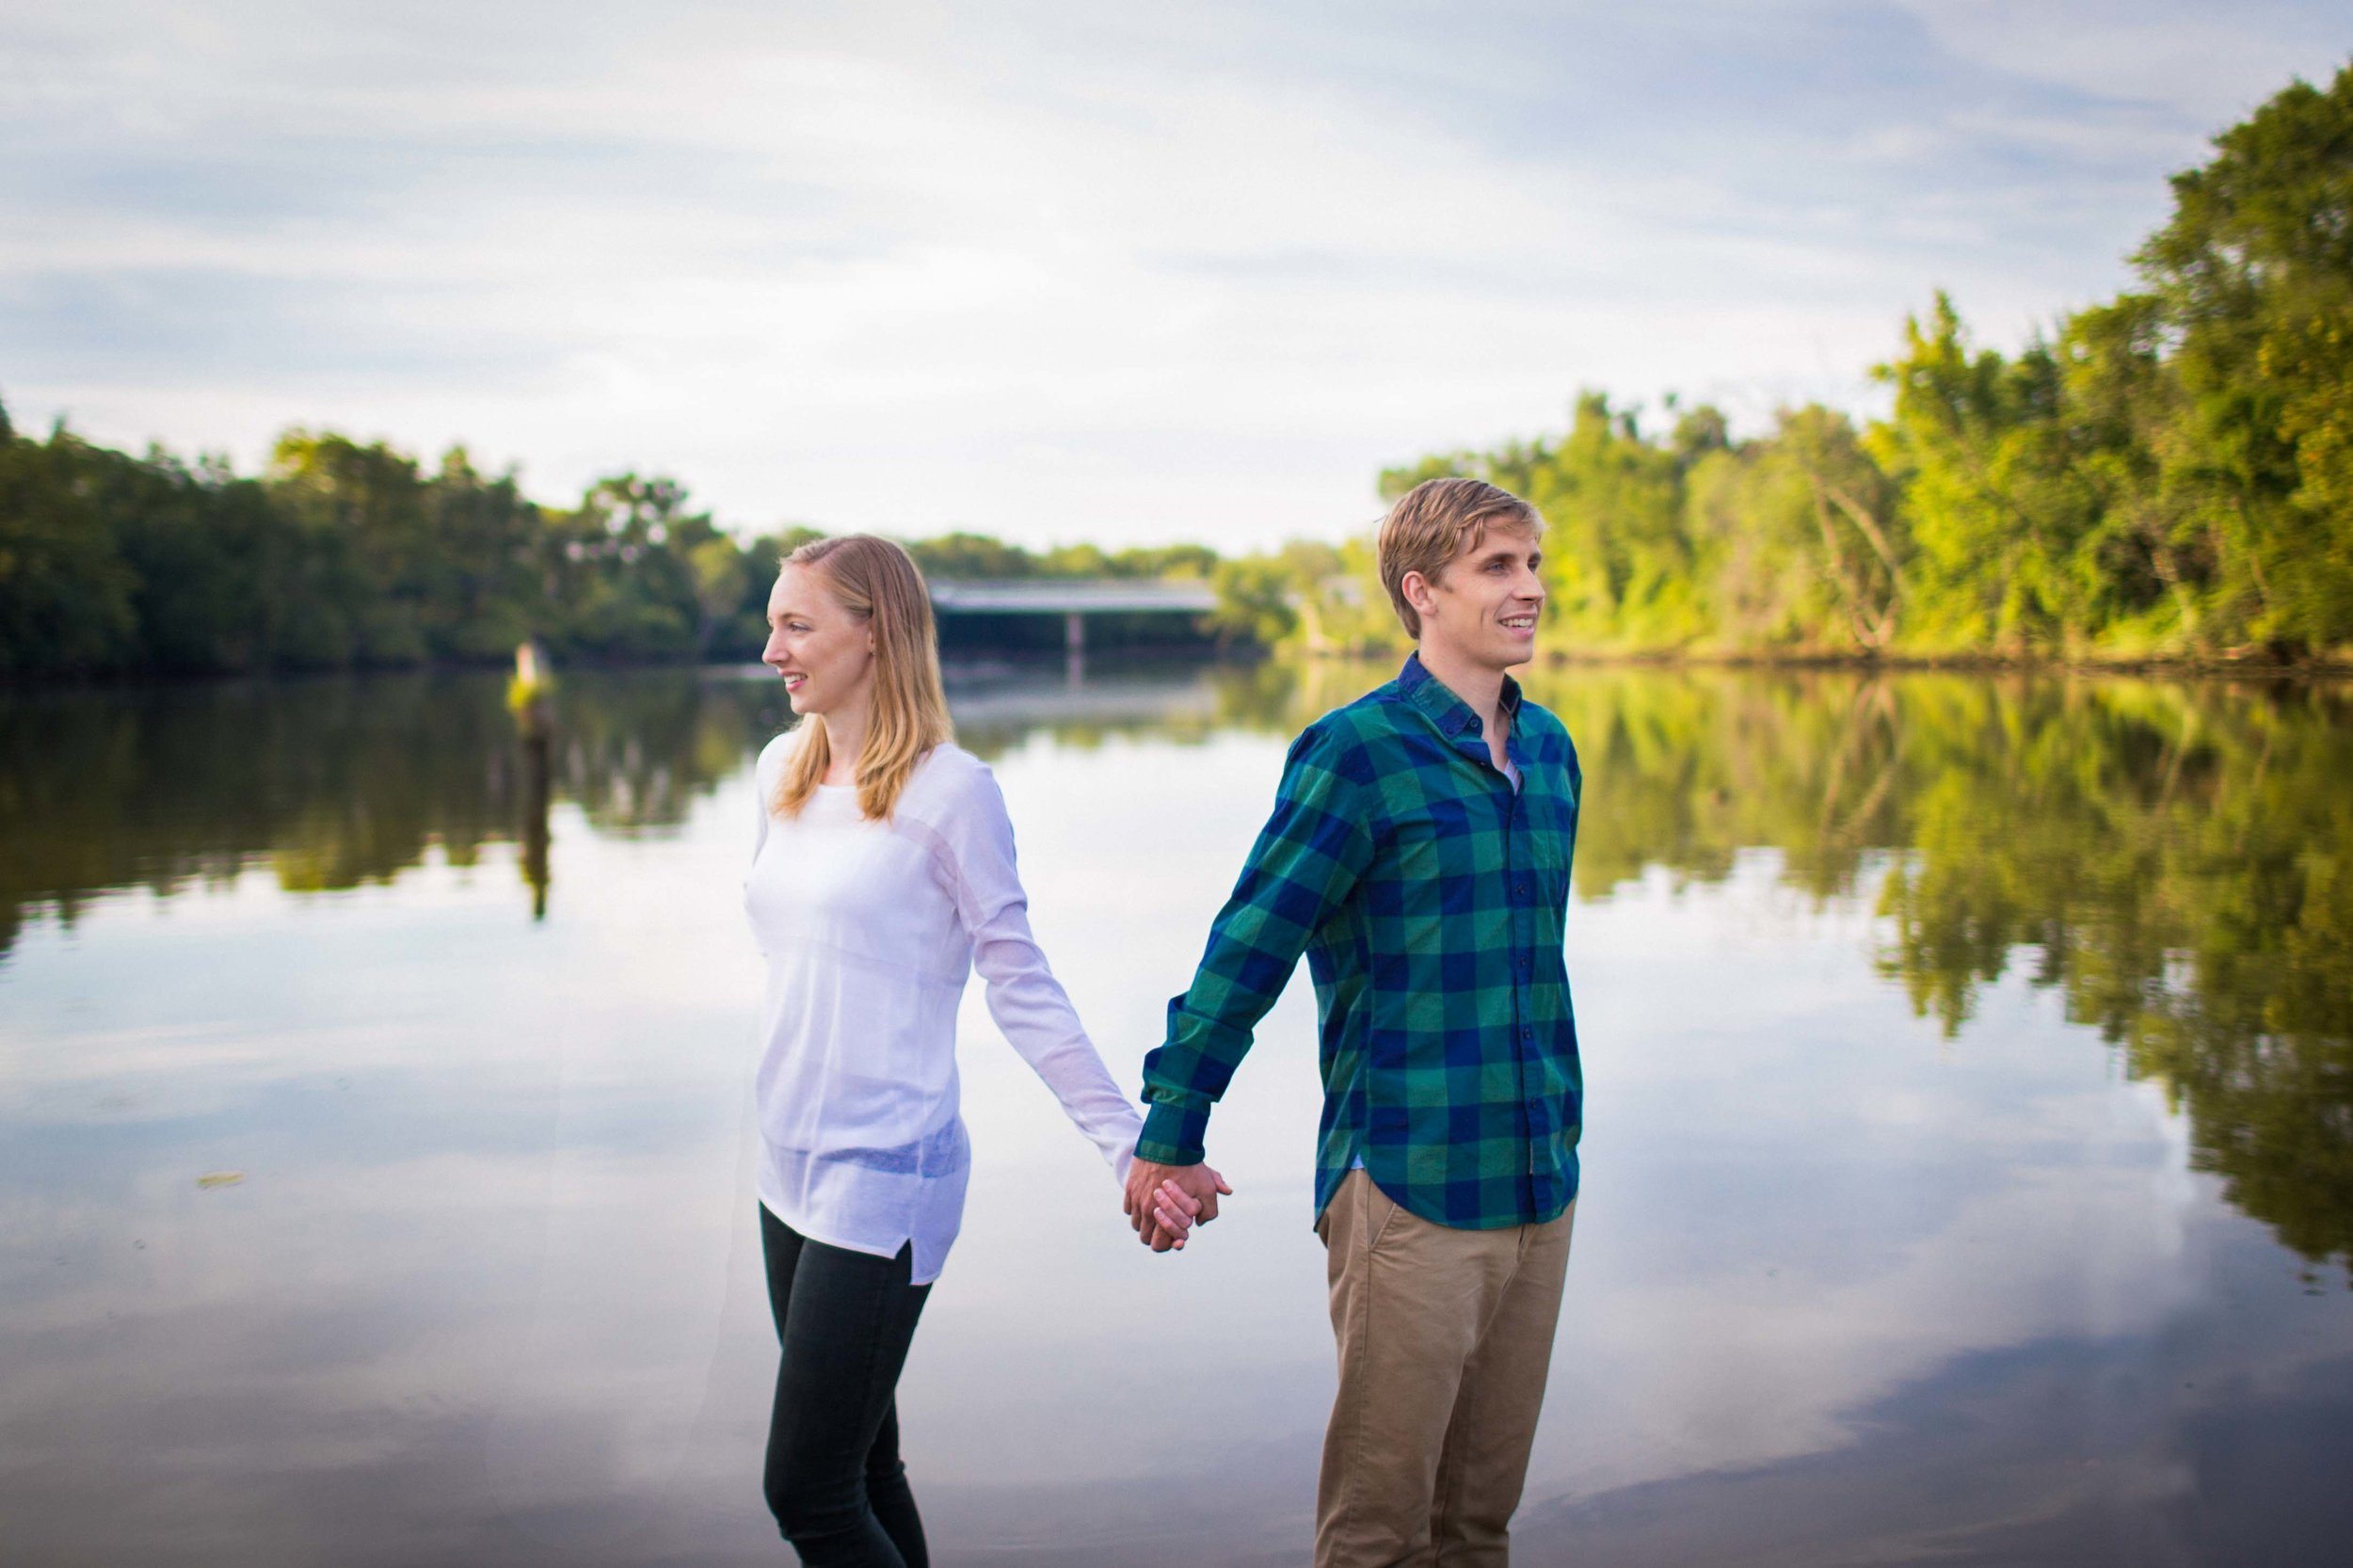 Luke + Hilary are runners, and run often at sunrise on Kingman Island. They love how peaceful it is.So we woke up early and headed to Kingman Island. I think the early wake up was worth it -- these photos capture Hilary + Luke's personalities and essence!